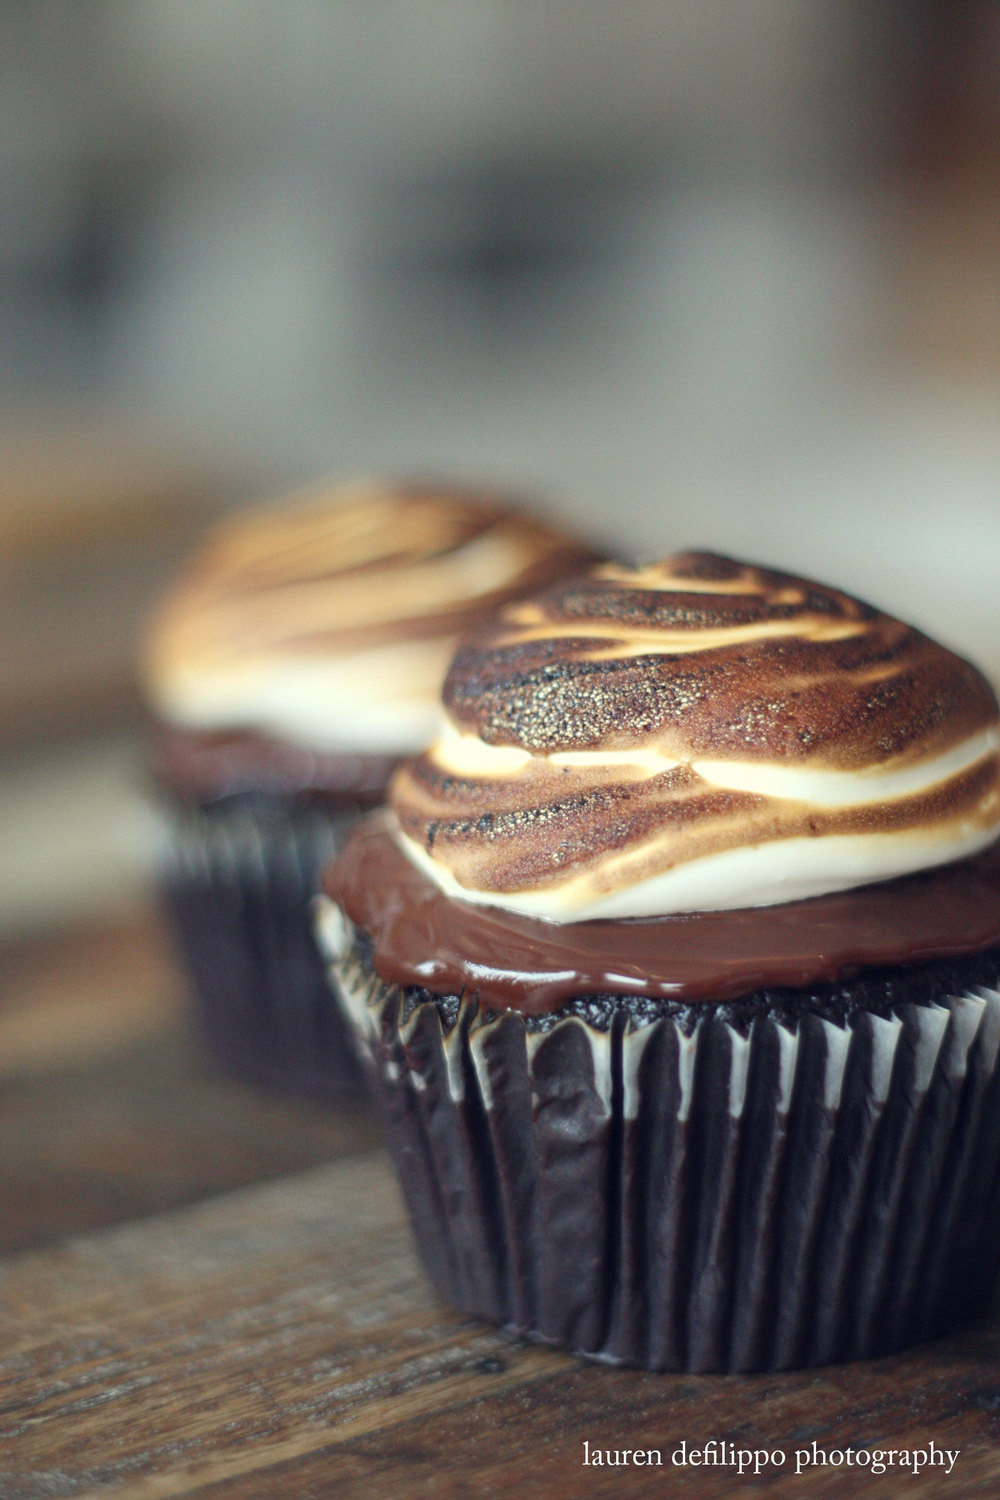 Don't forget dessert: from their signature gelato and sorbetto, to these beautifully brûléed s'mores cupcakes, the shop's not short on sweets.